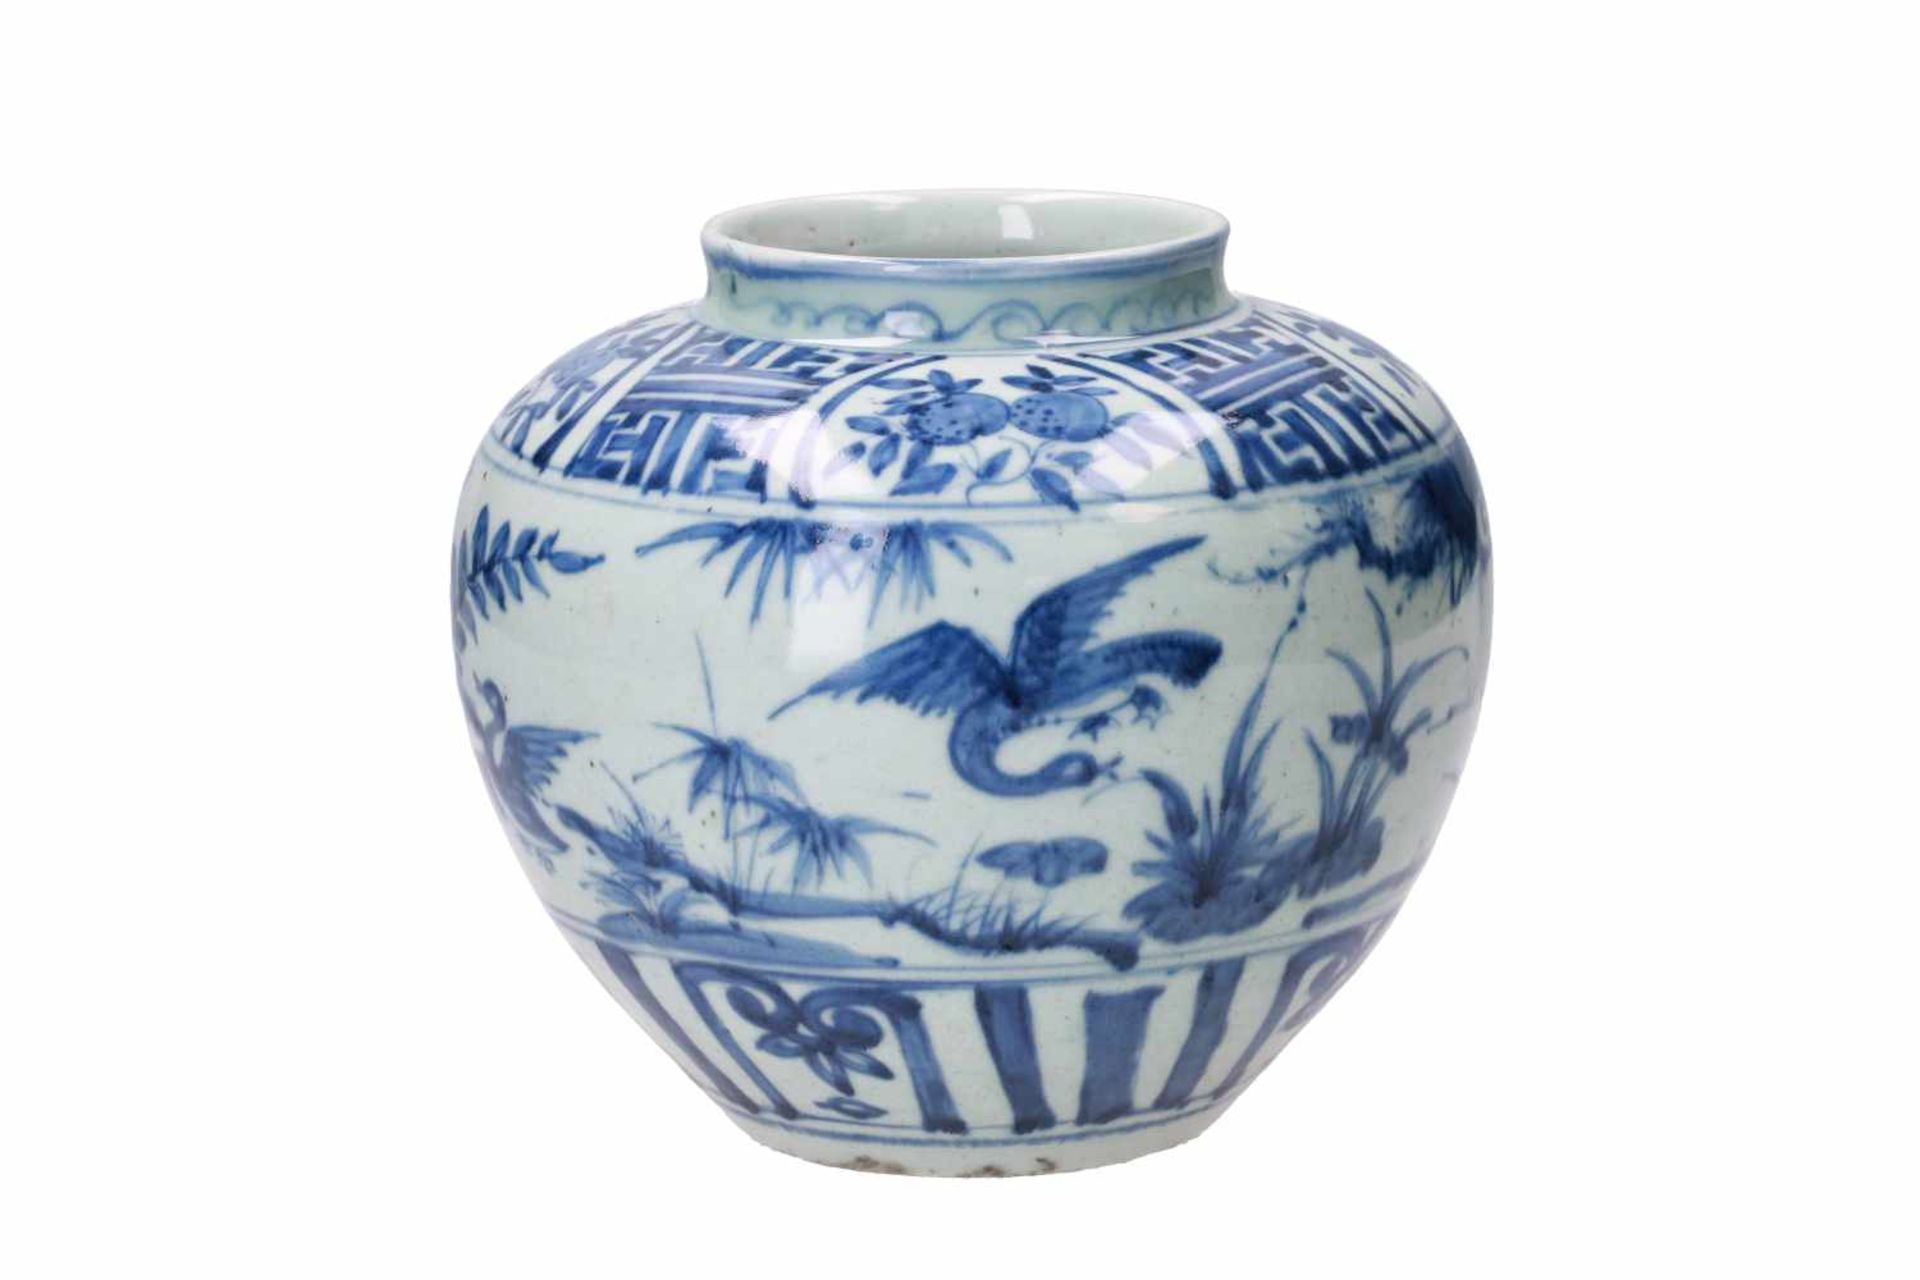 A blue and white porcelain jar, decorated with ducks, peaches and flowers. Unmarked. China, Wanli. - Bild 3 aus 7